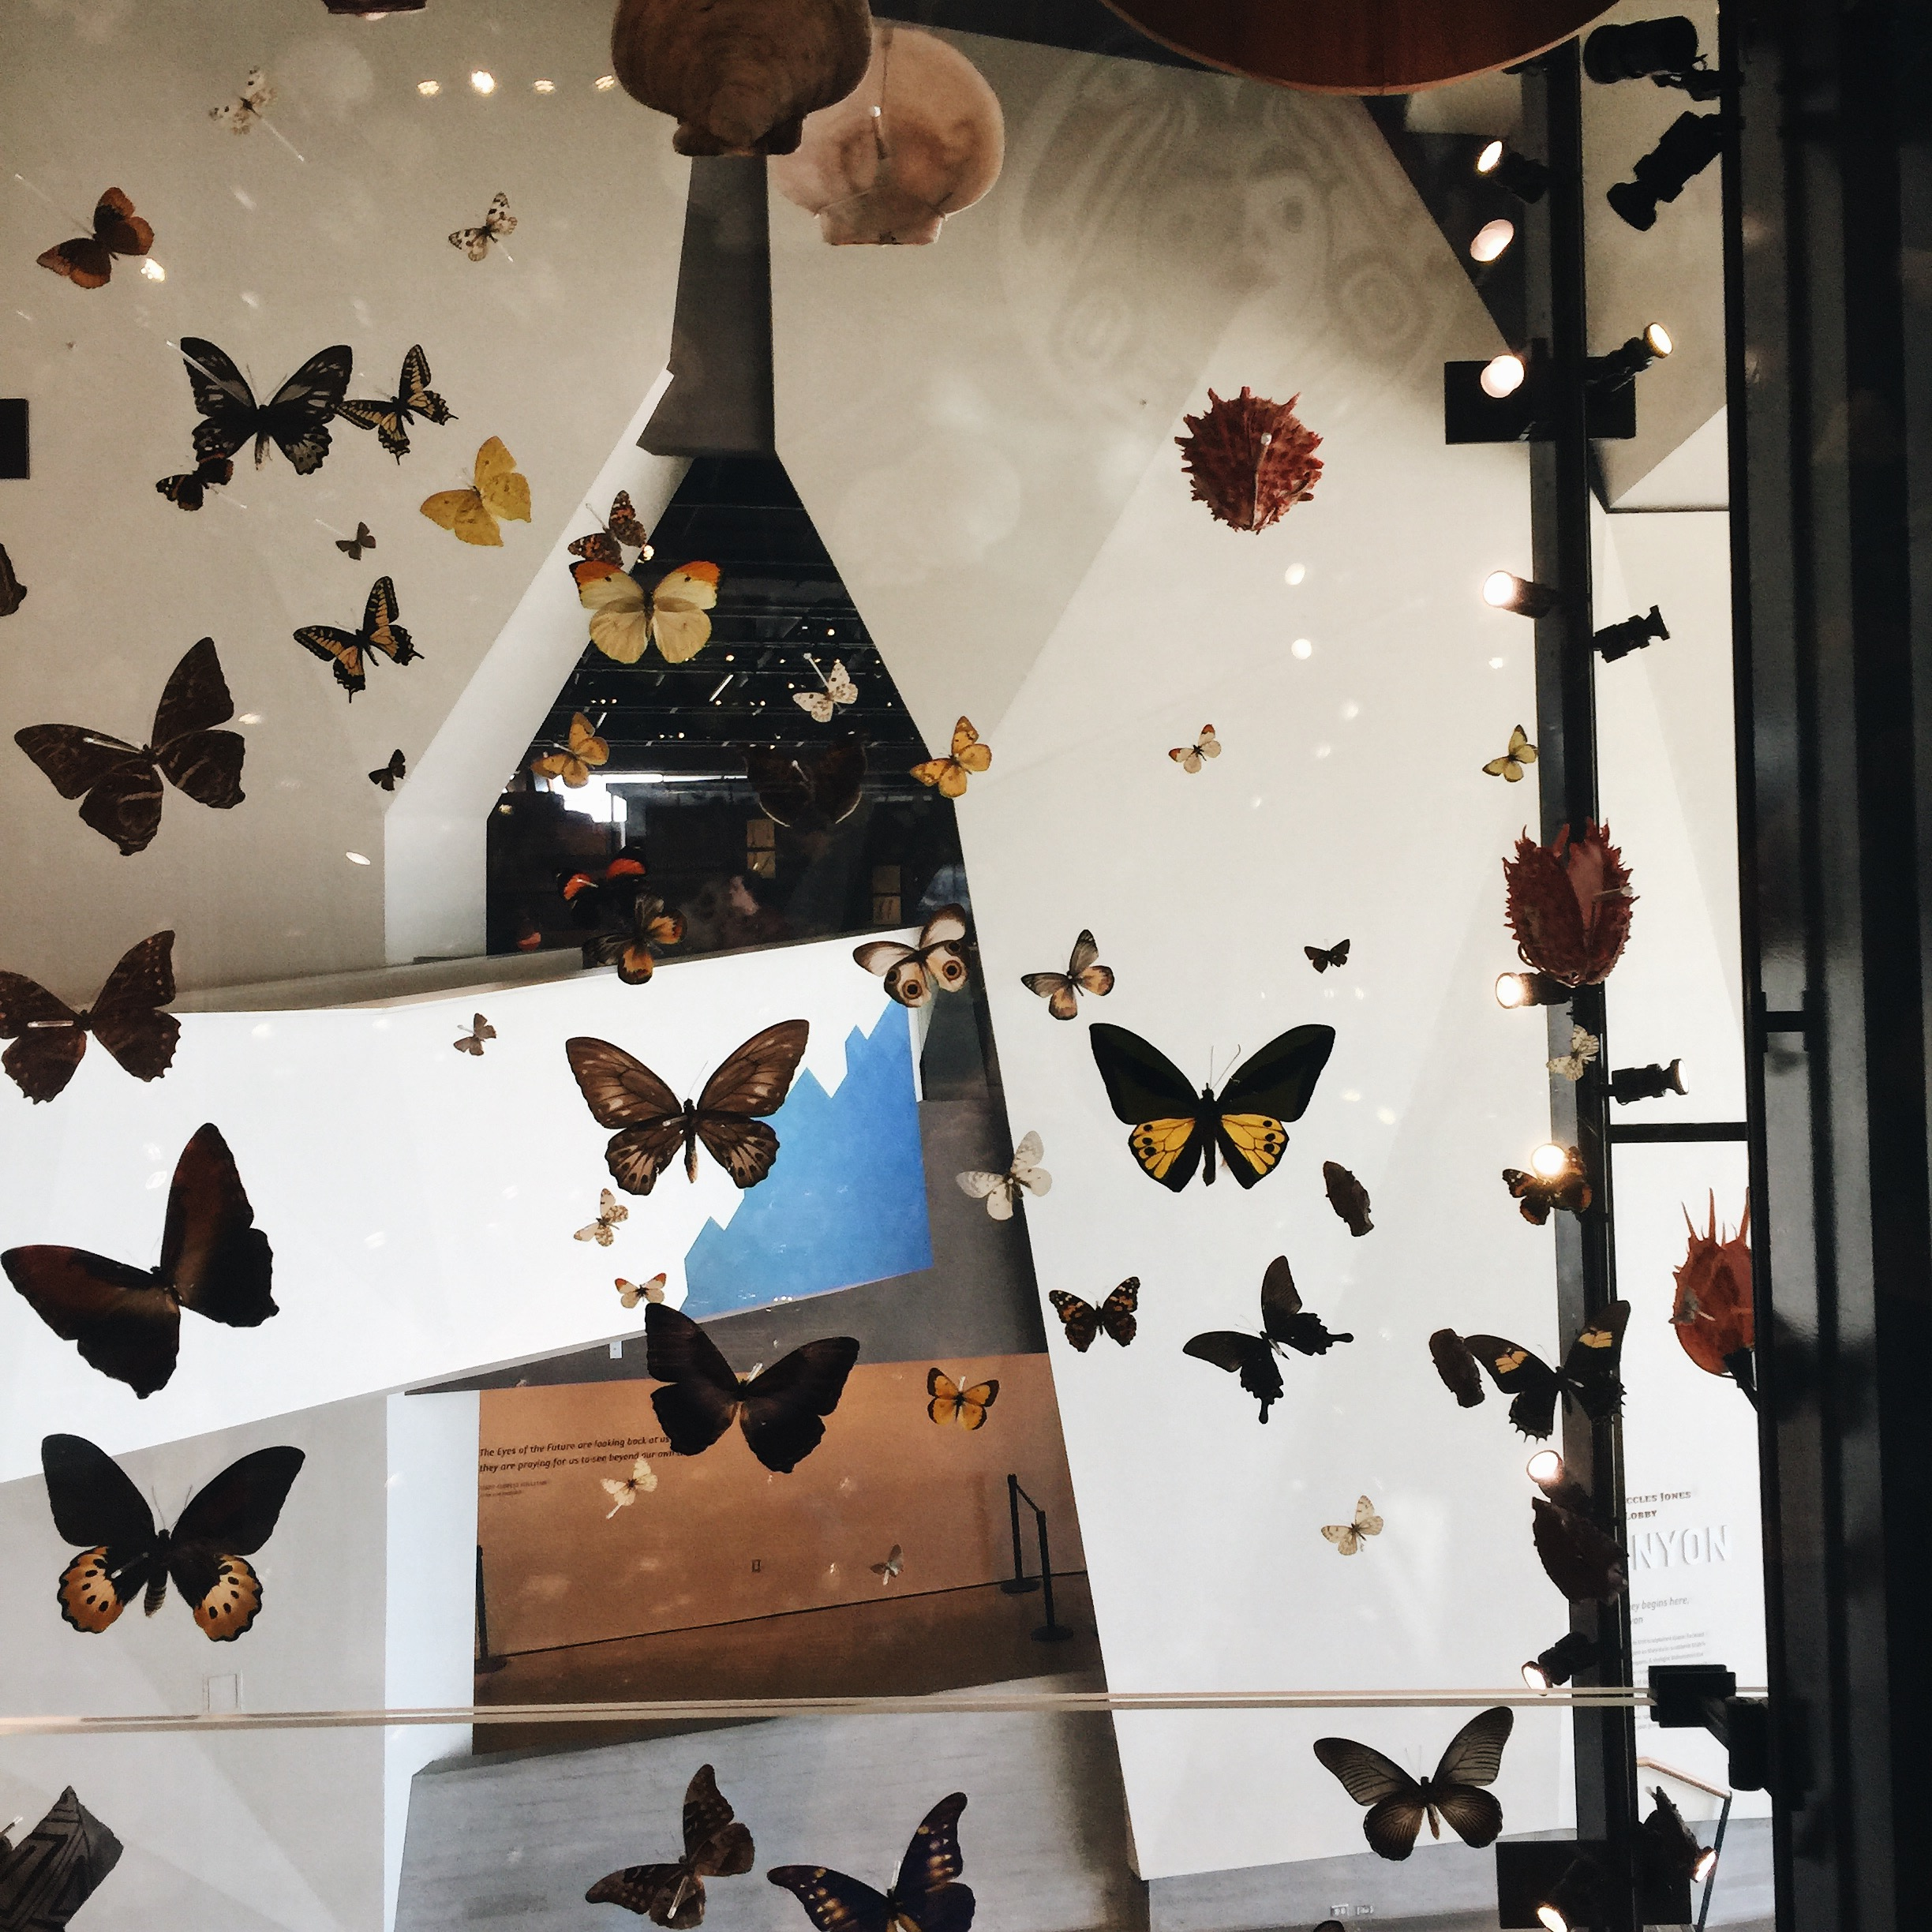 I love that we live in a world with butterflies!